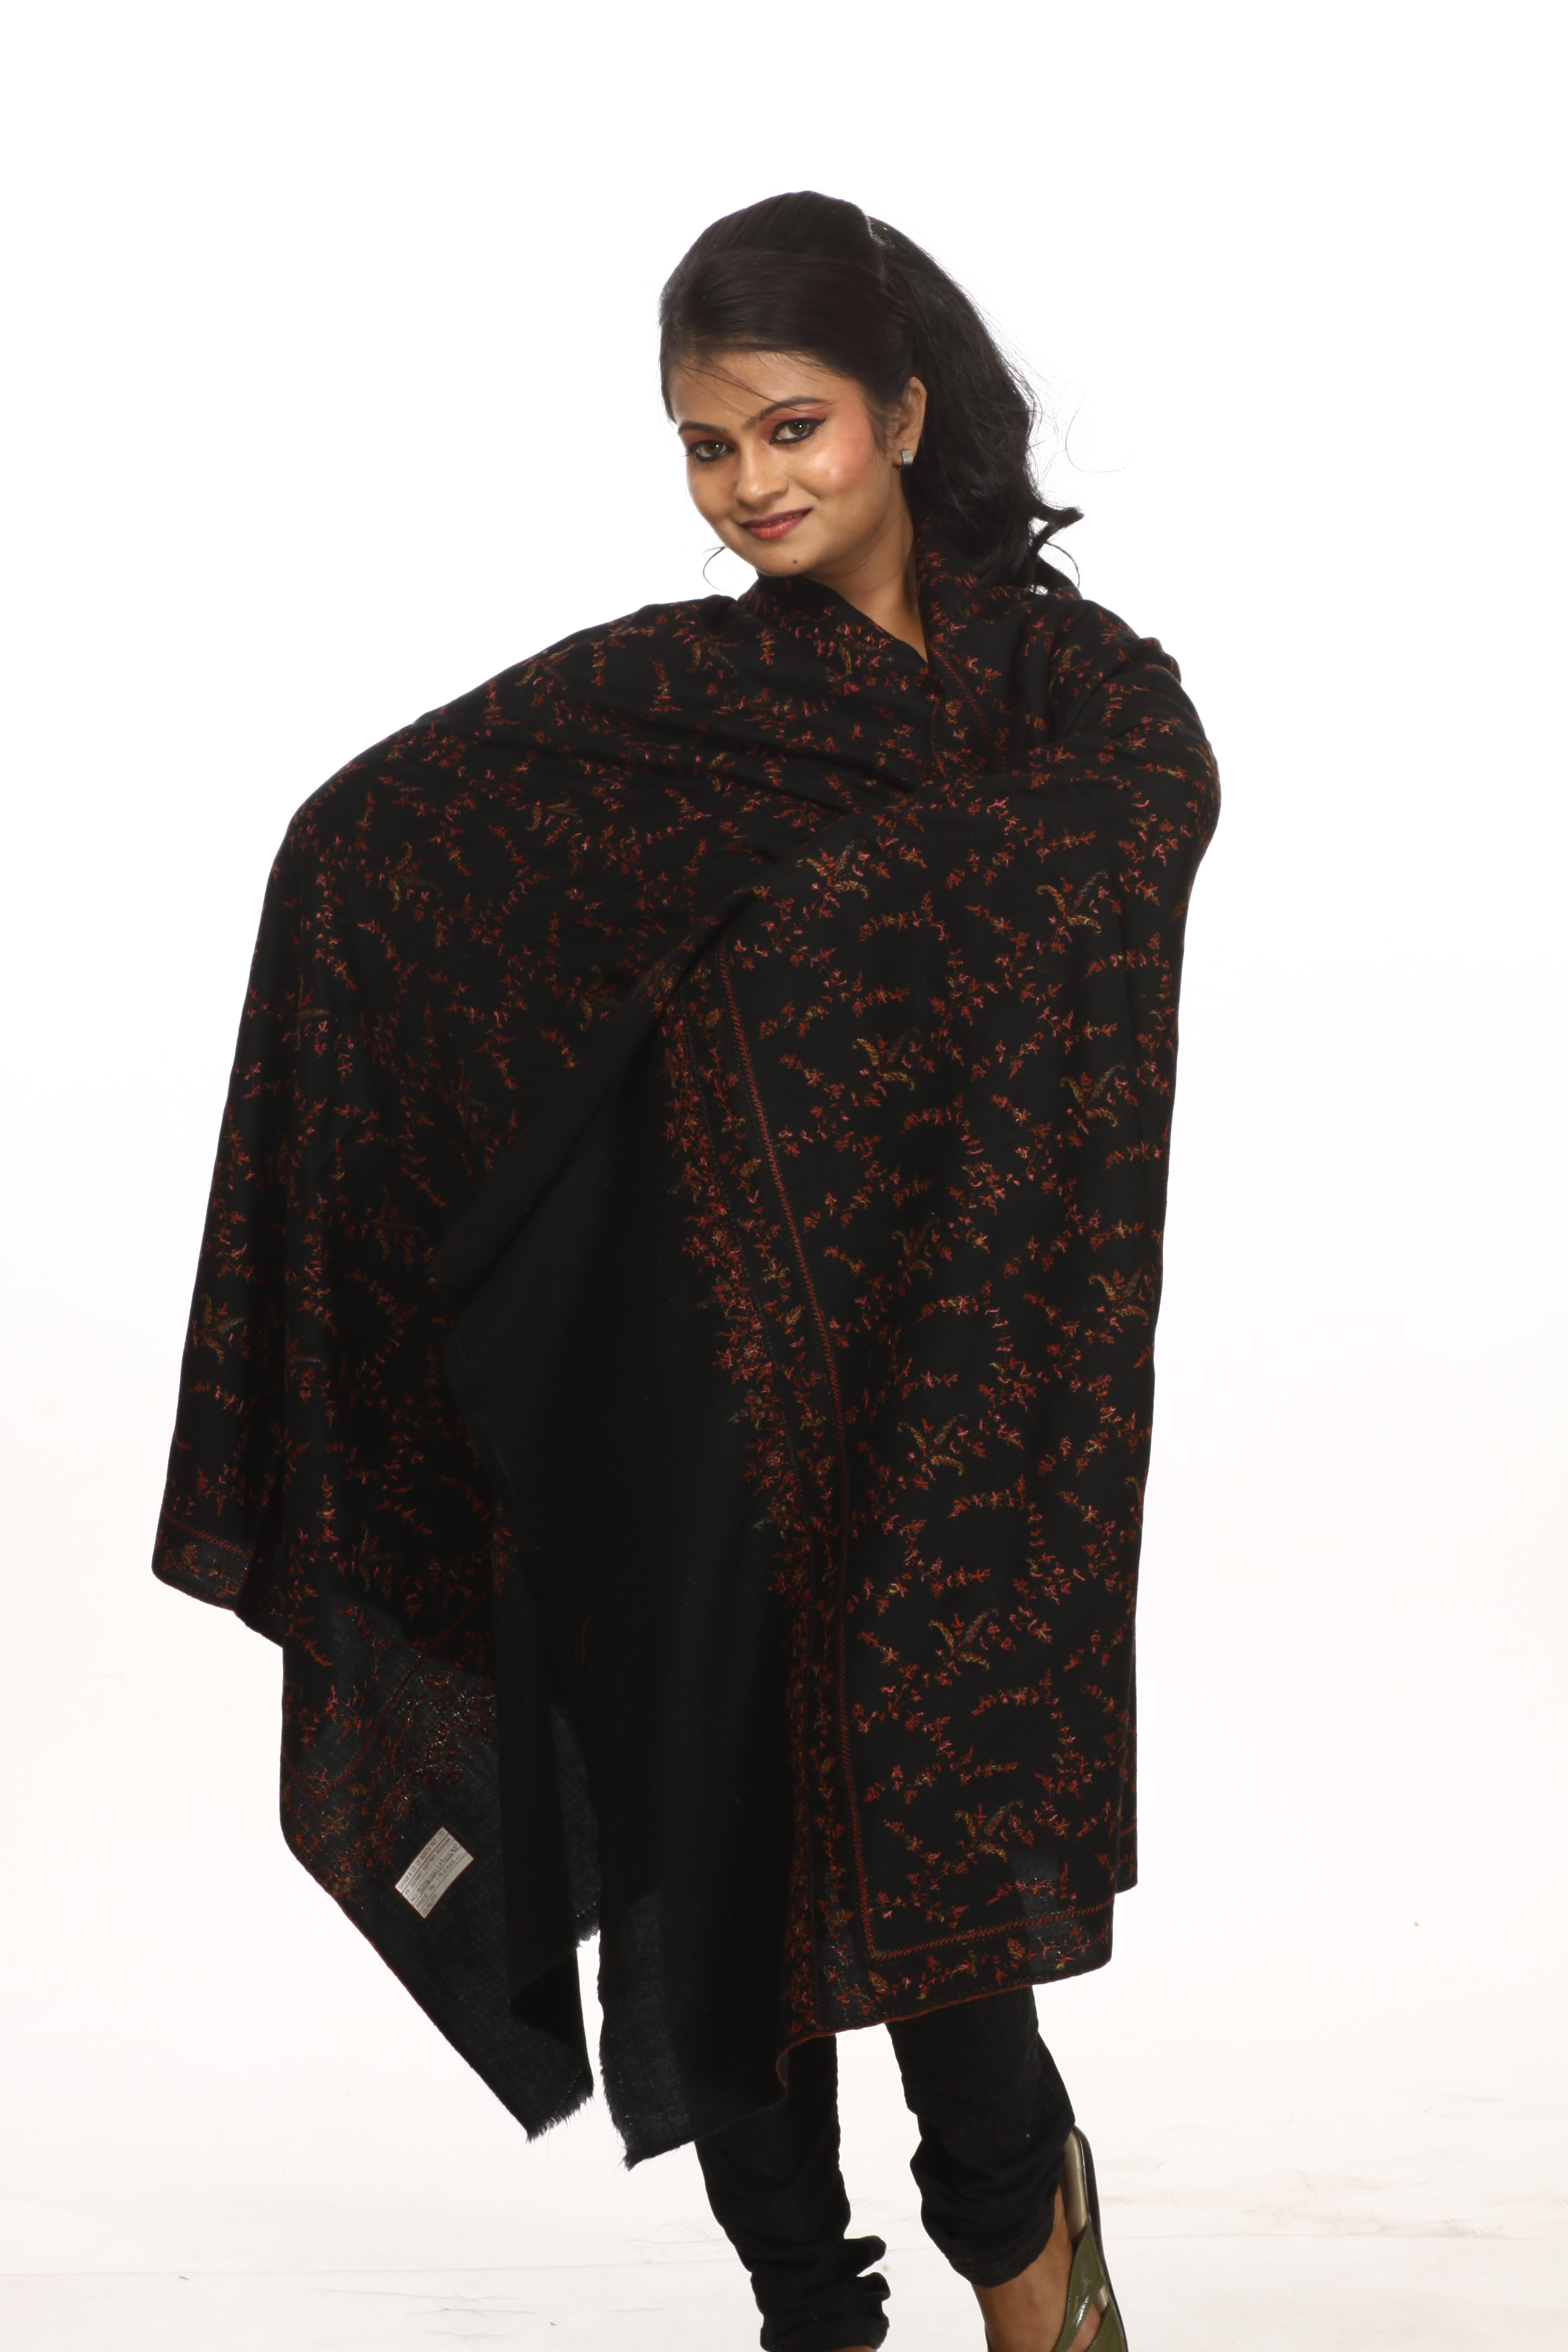 Black Pashmina Shawl from Kashmir with Sozni Hand Embroidered Flowers